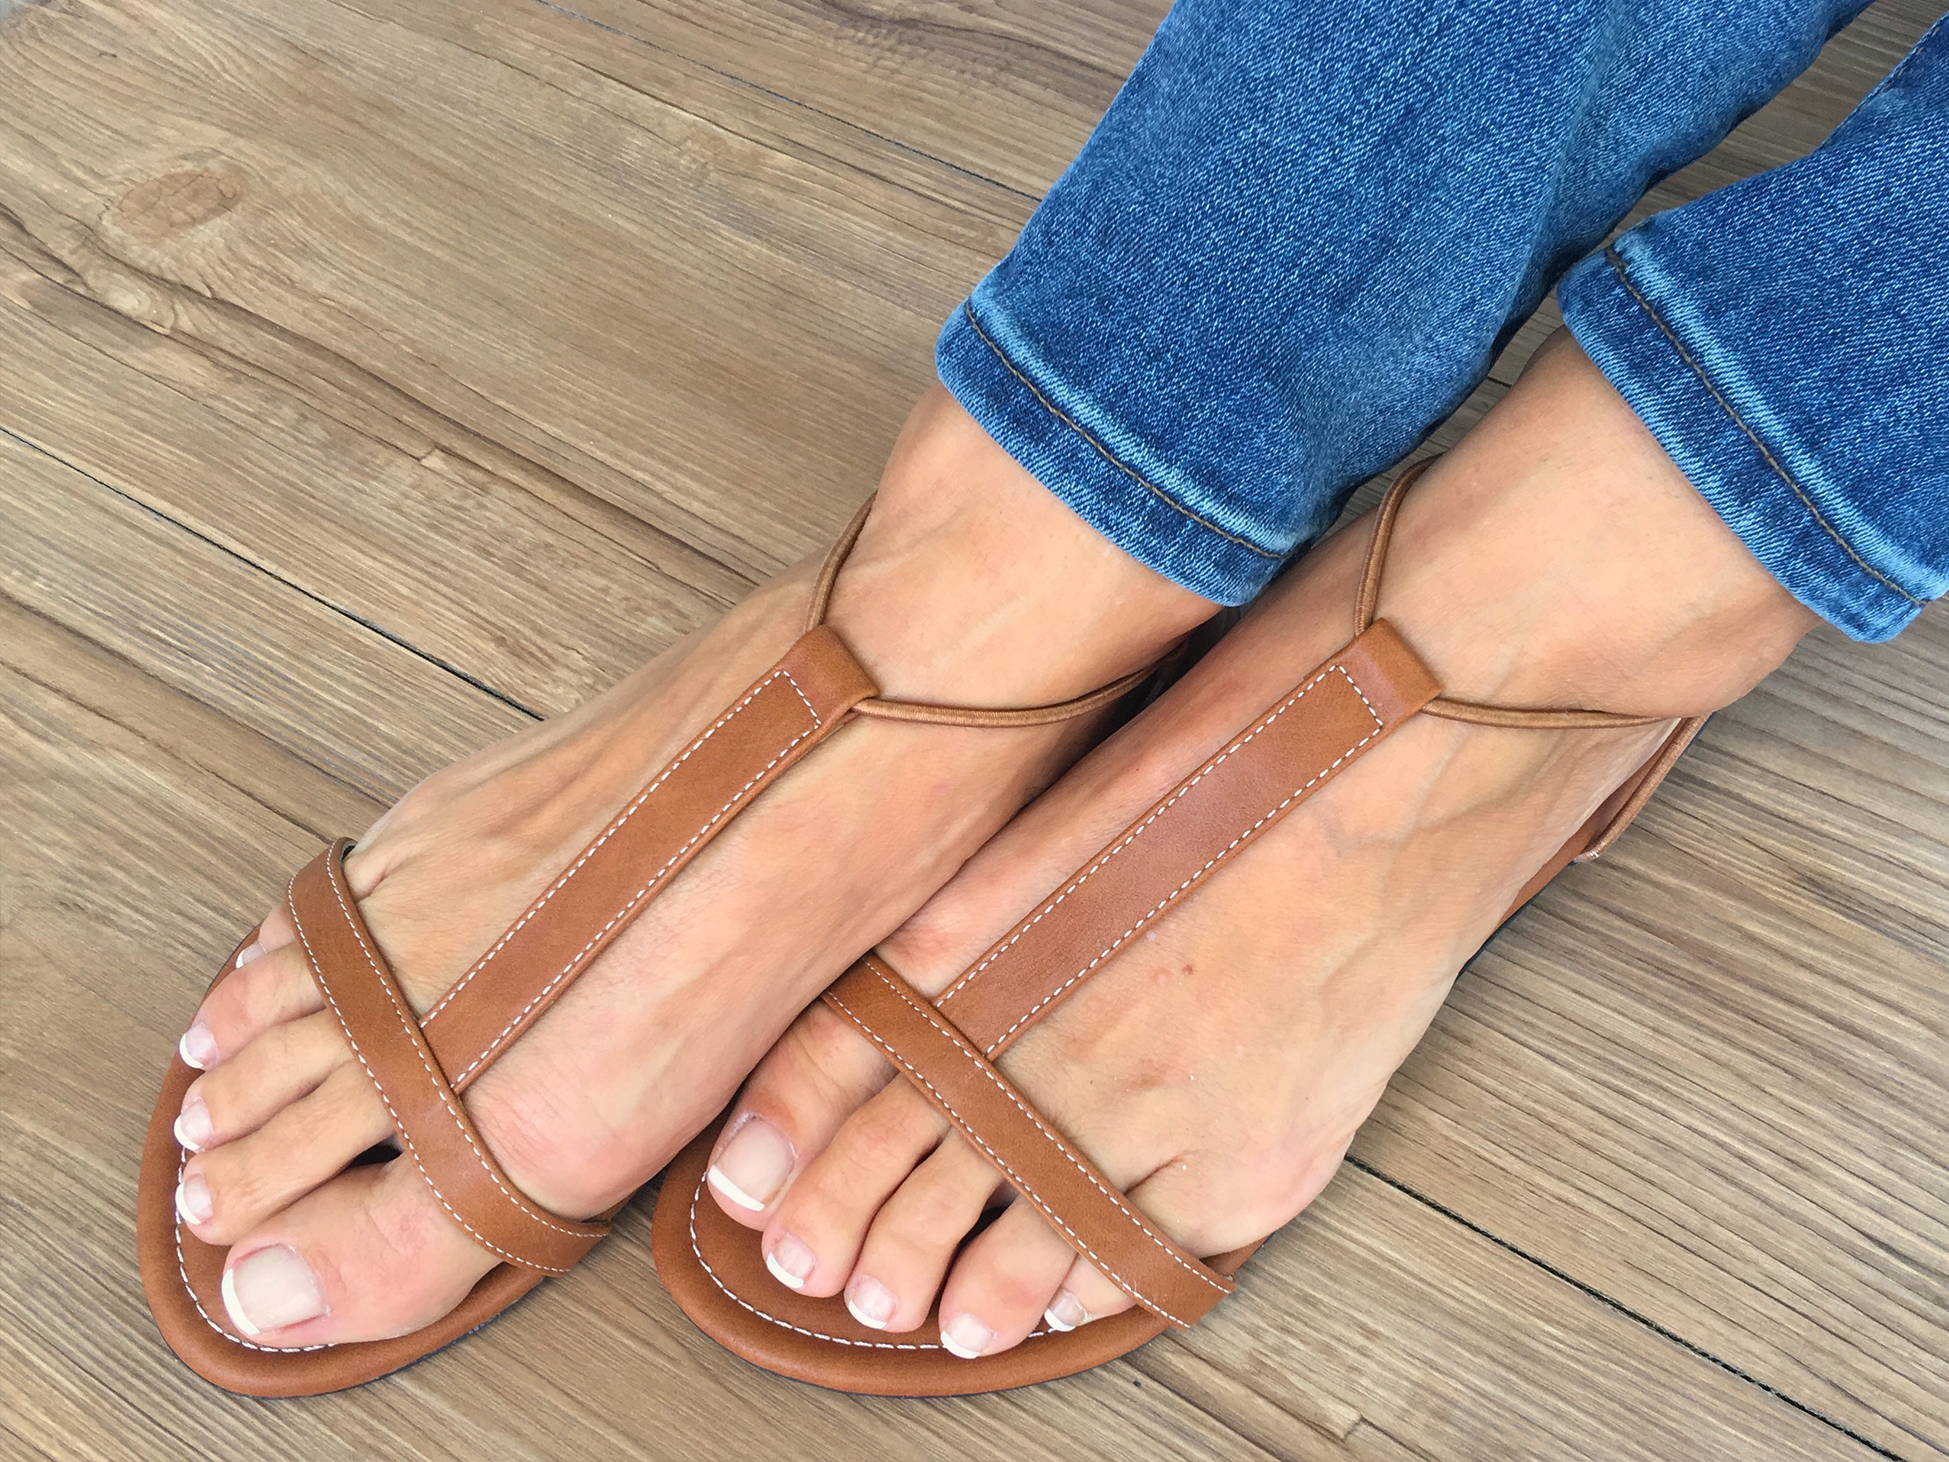 Sandals Natural By With My Sands